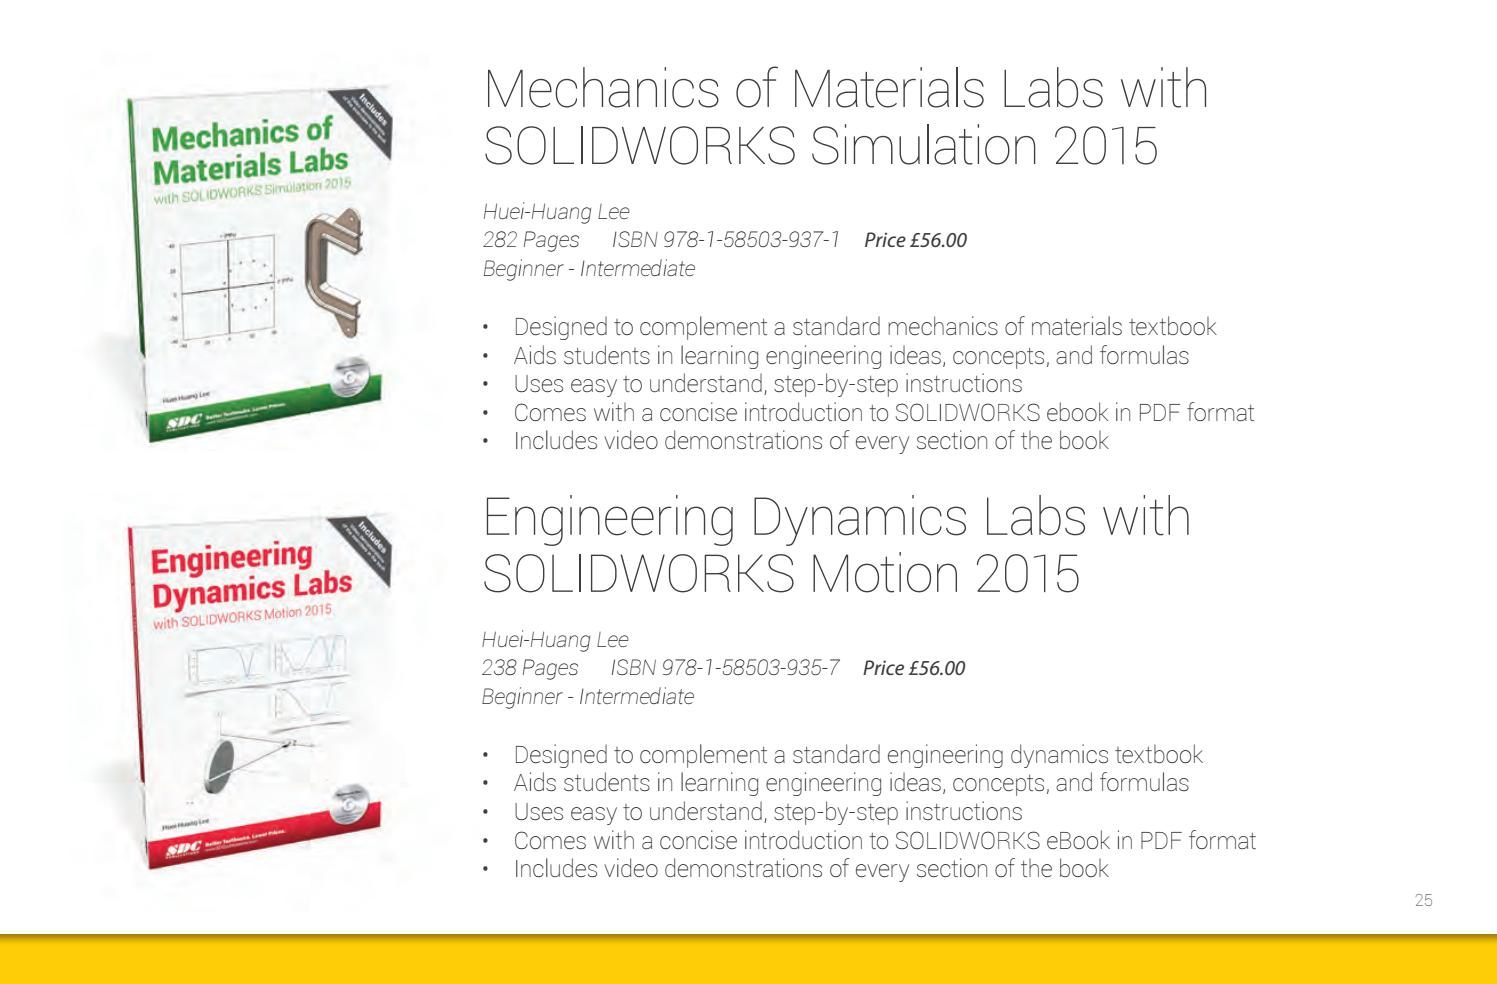 Sdc solidworks 2017 by scientific books information issuu fandeluxe Choice Image